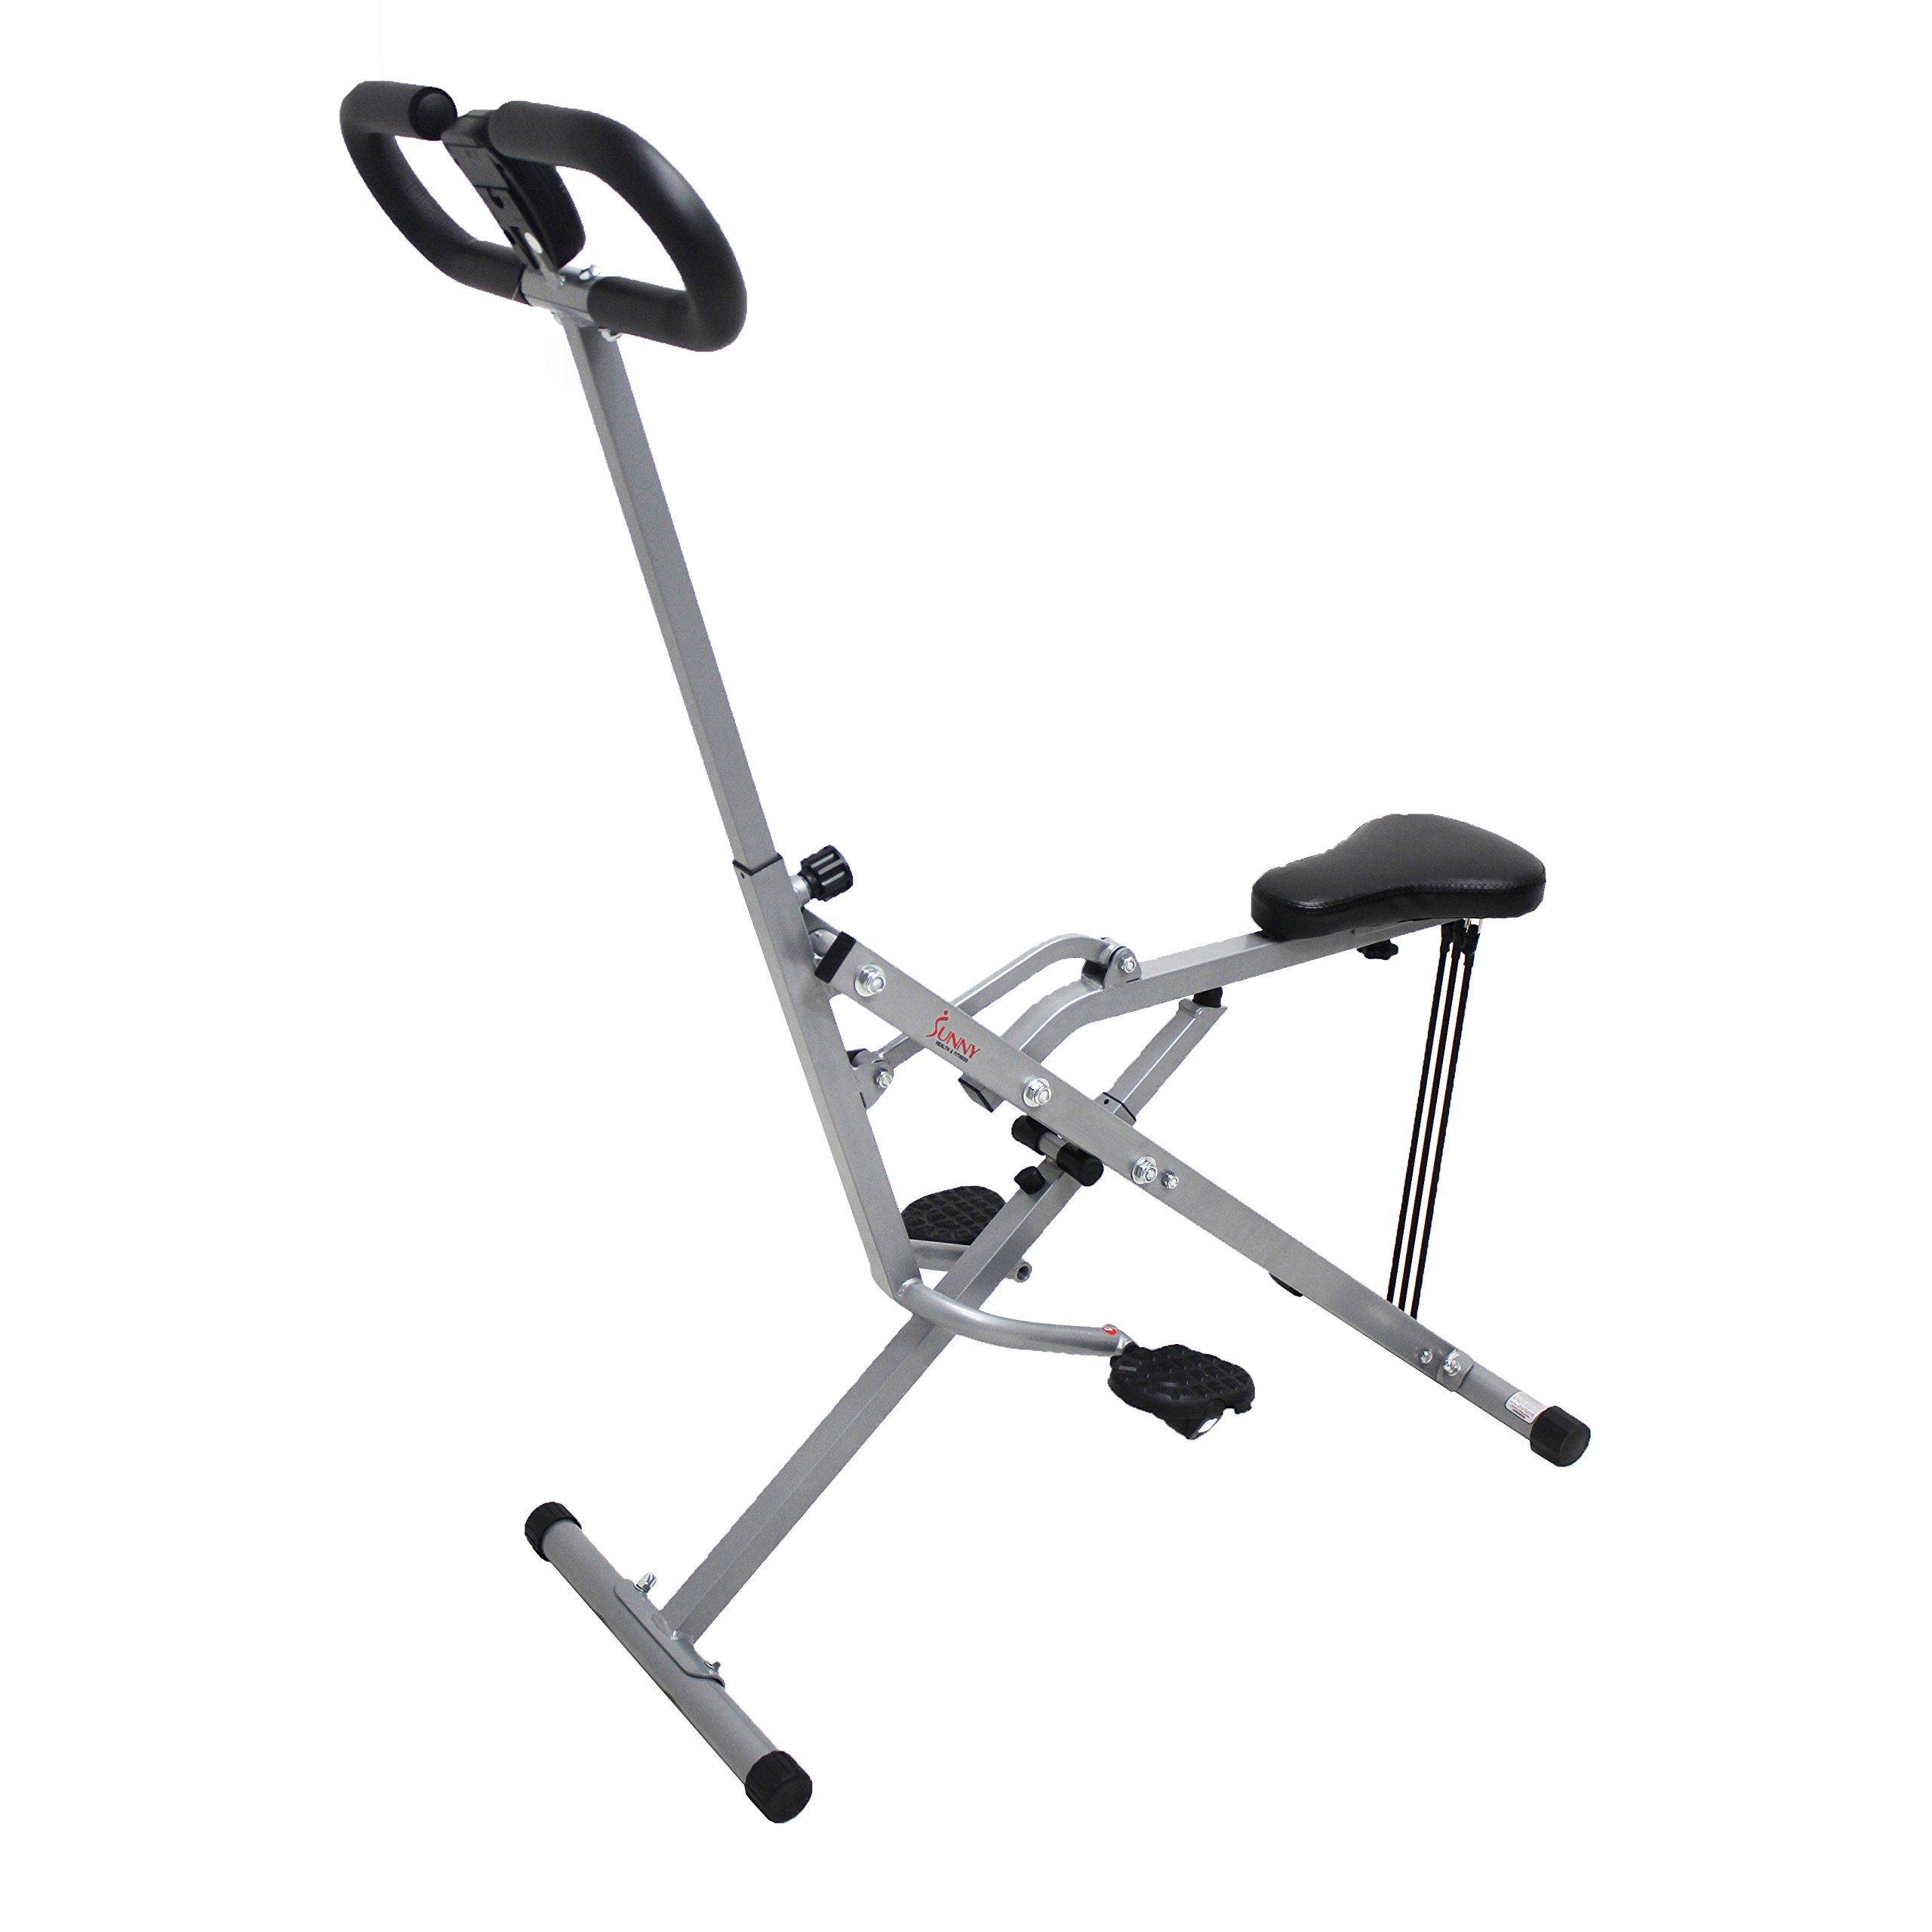 Sunny Health & Fitness Squat Assist Row-N-Ride Trainer for Squat Exercise and Glutes Workout by Sunny Health & Fitness (Image #3)